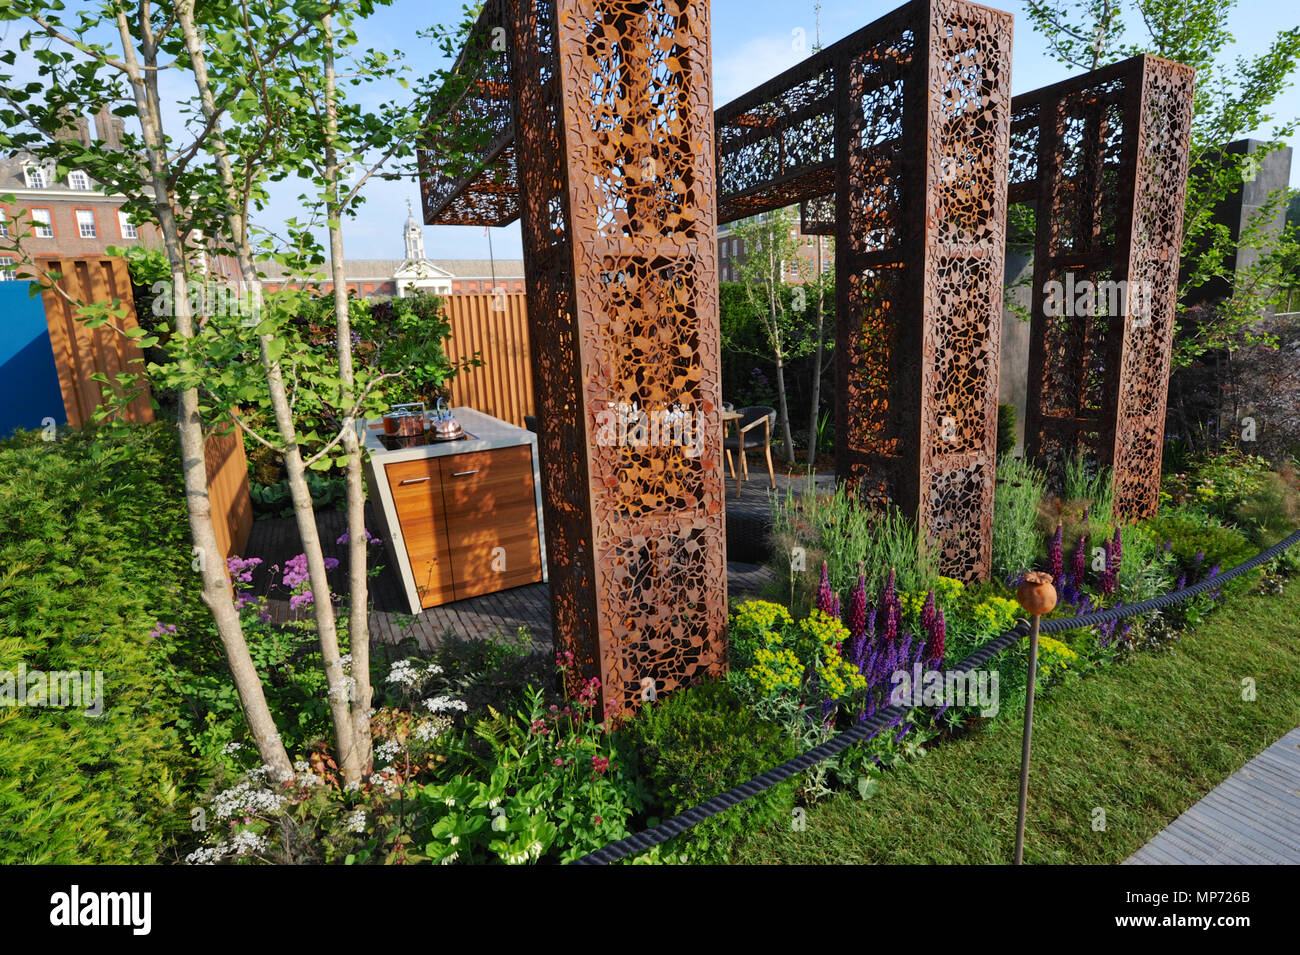 London, UK. 21st May 2018. The Urban Flow garden (designed by Tony ...